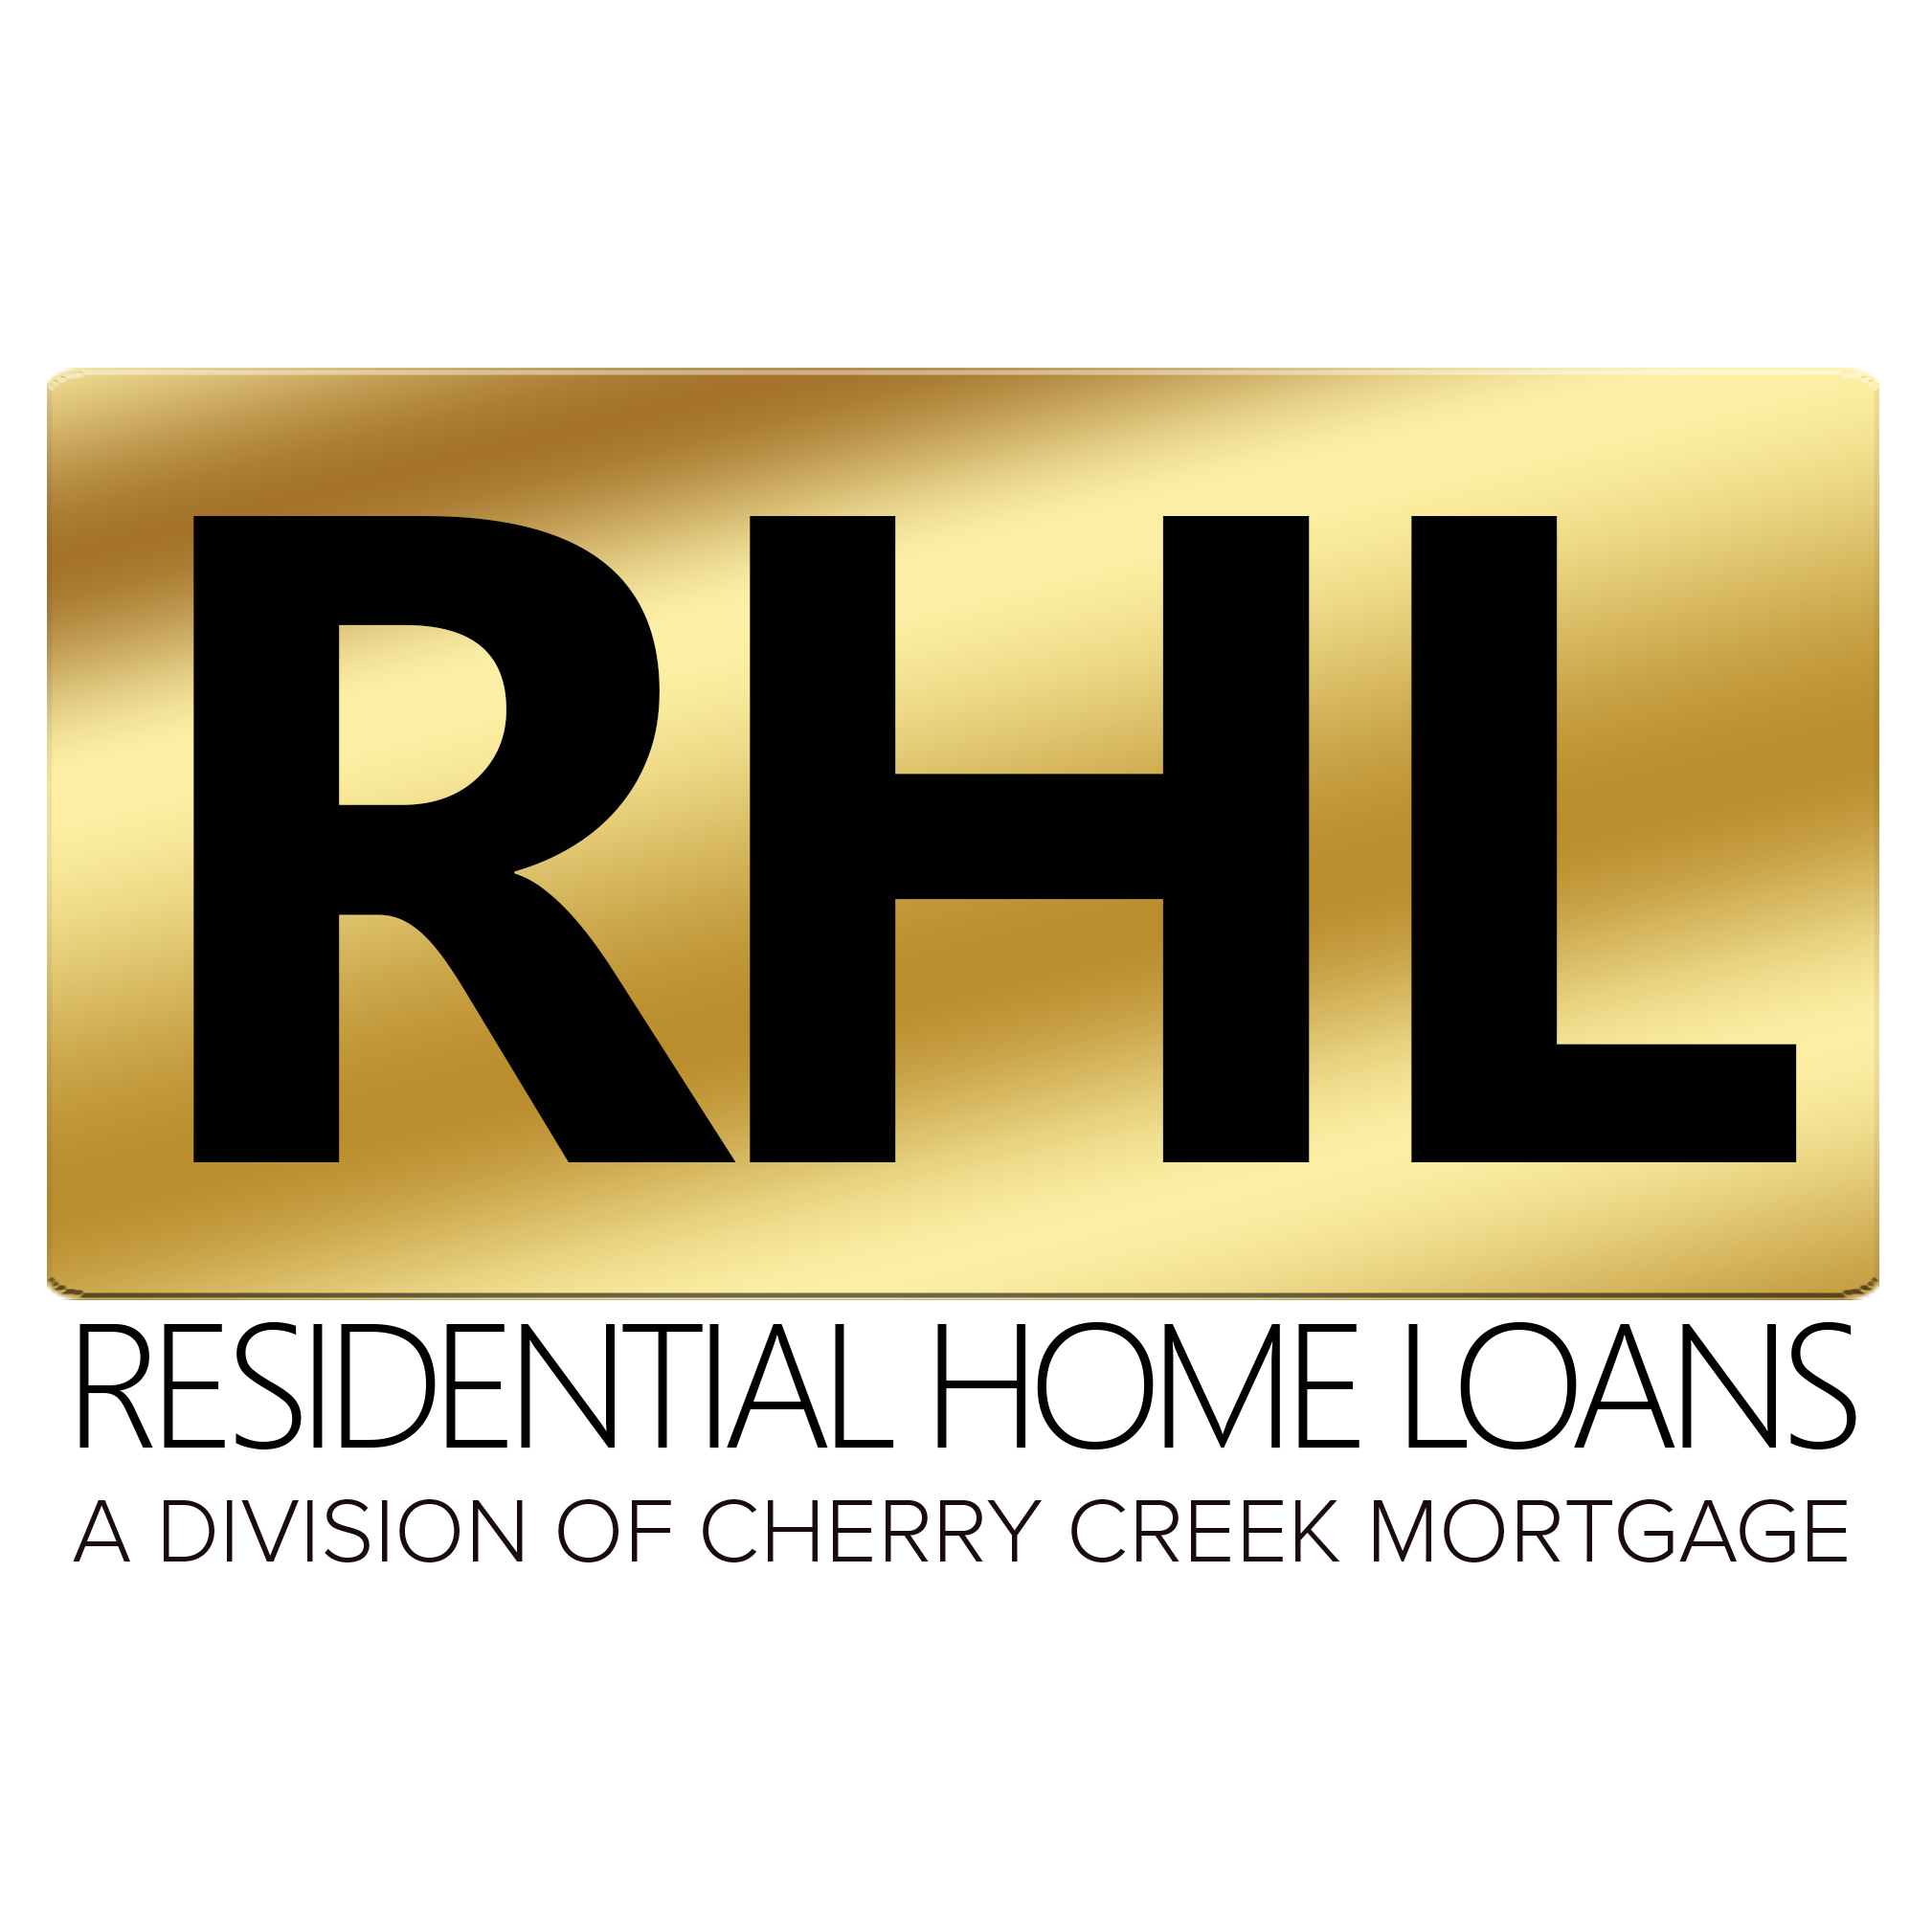 Residential Home Loans, Craig Mitchell, NMLS# 286100